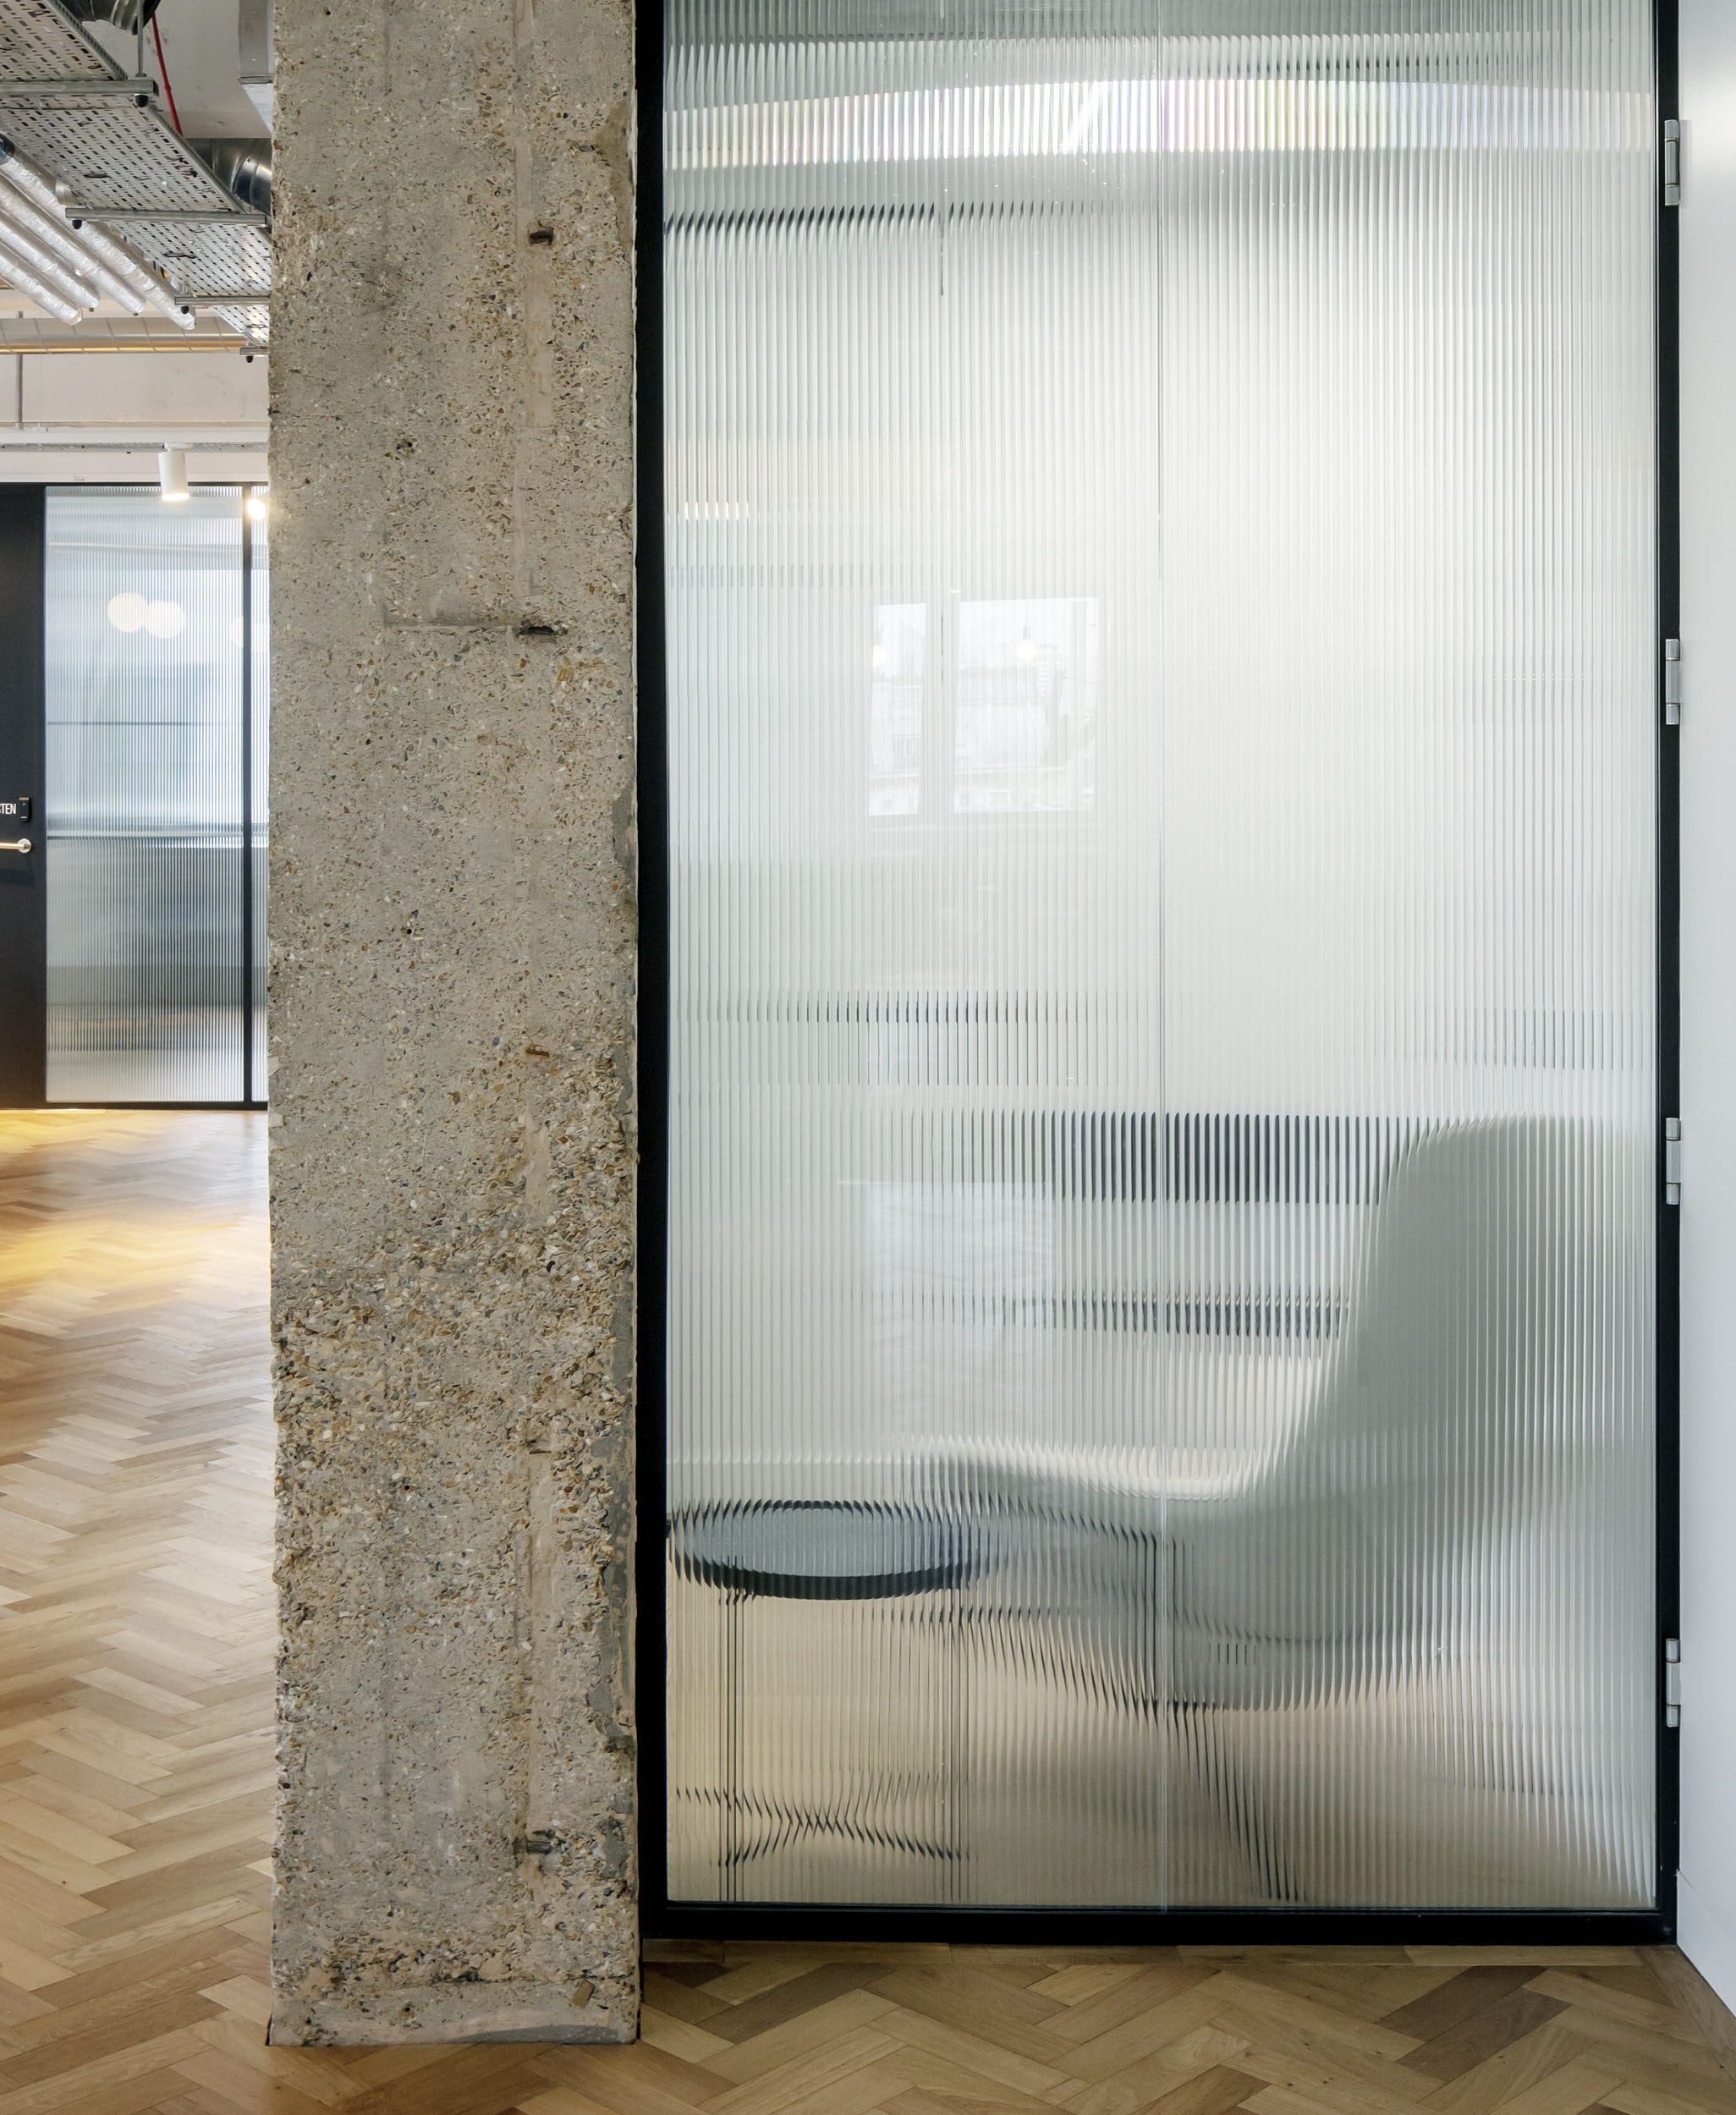 Interior photography showing fluted glass screens creating privacy while maintaining-connections and delivering light.